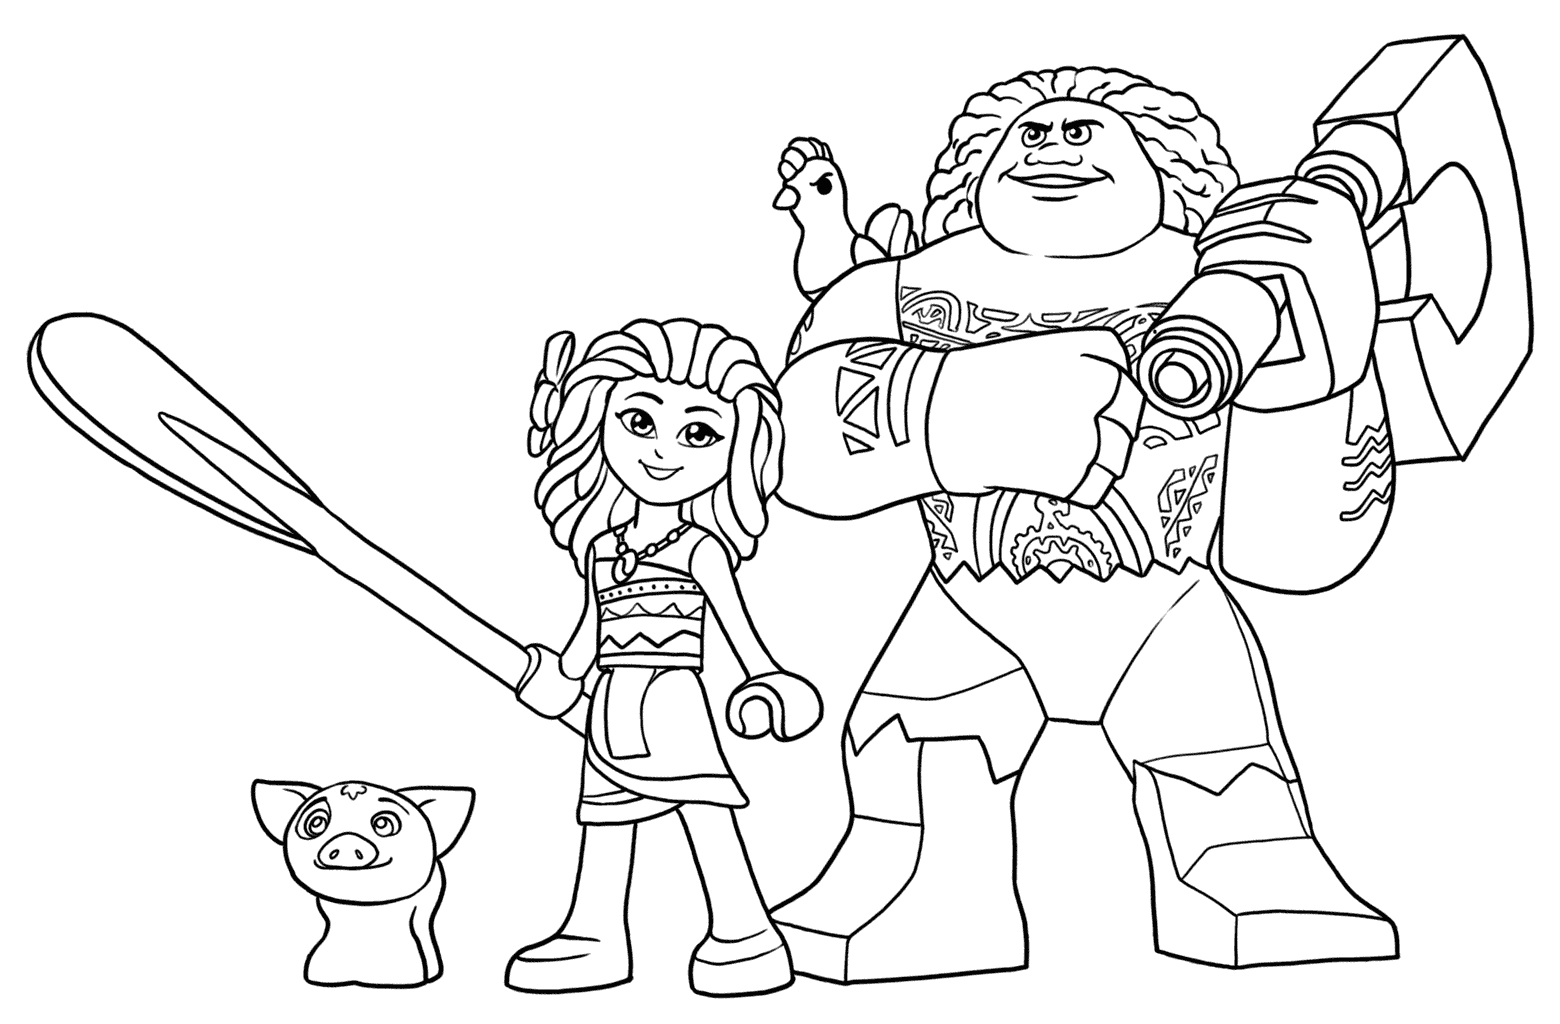 Moana Movie Coloring Pages At GetDrawings